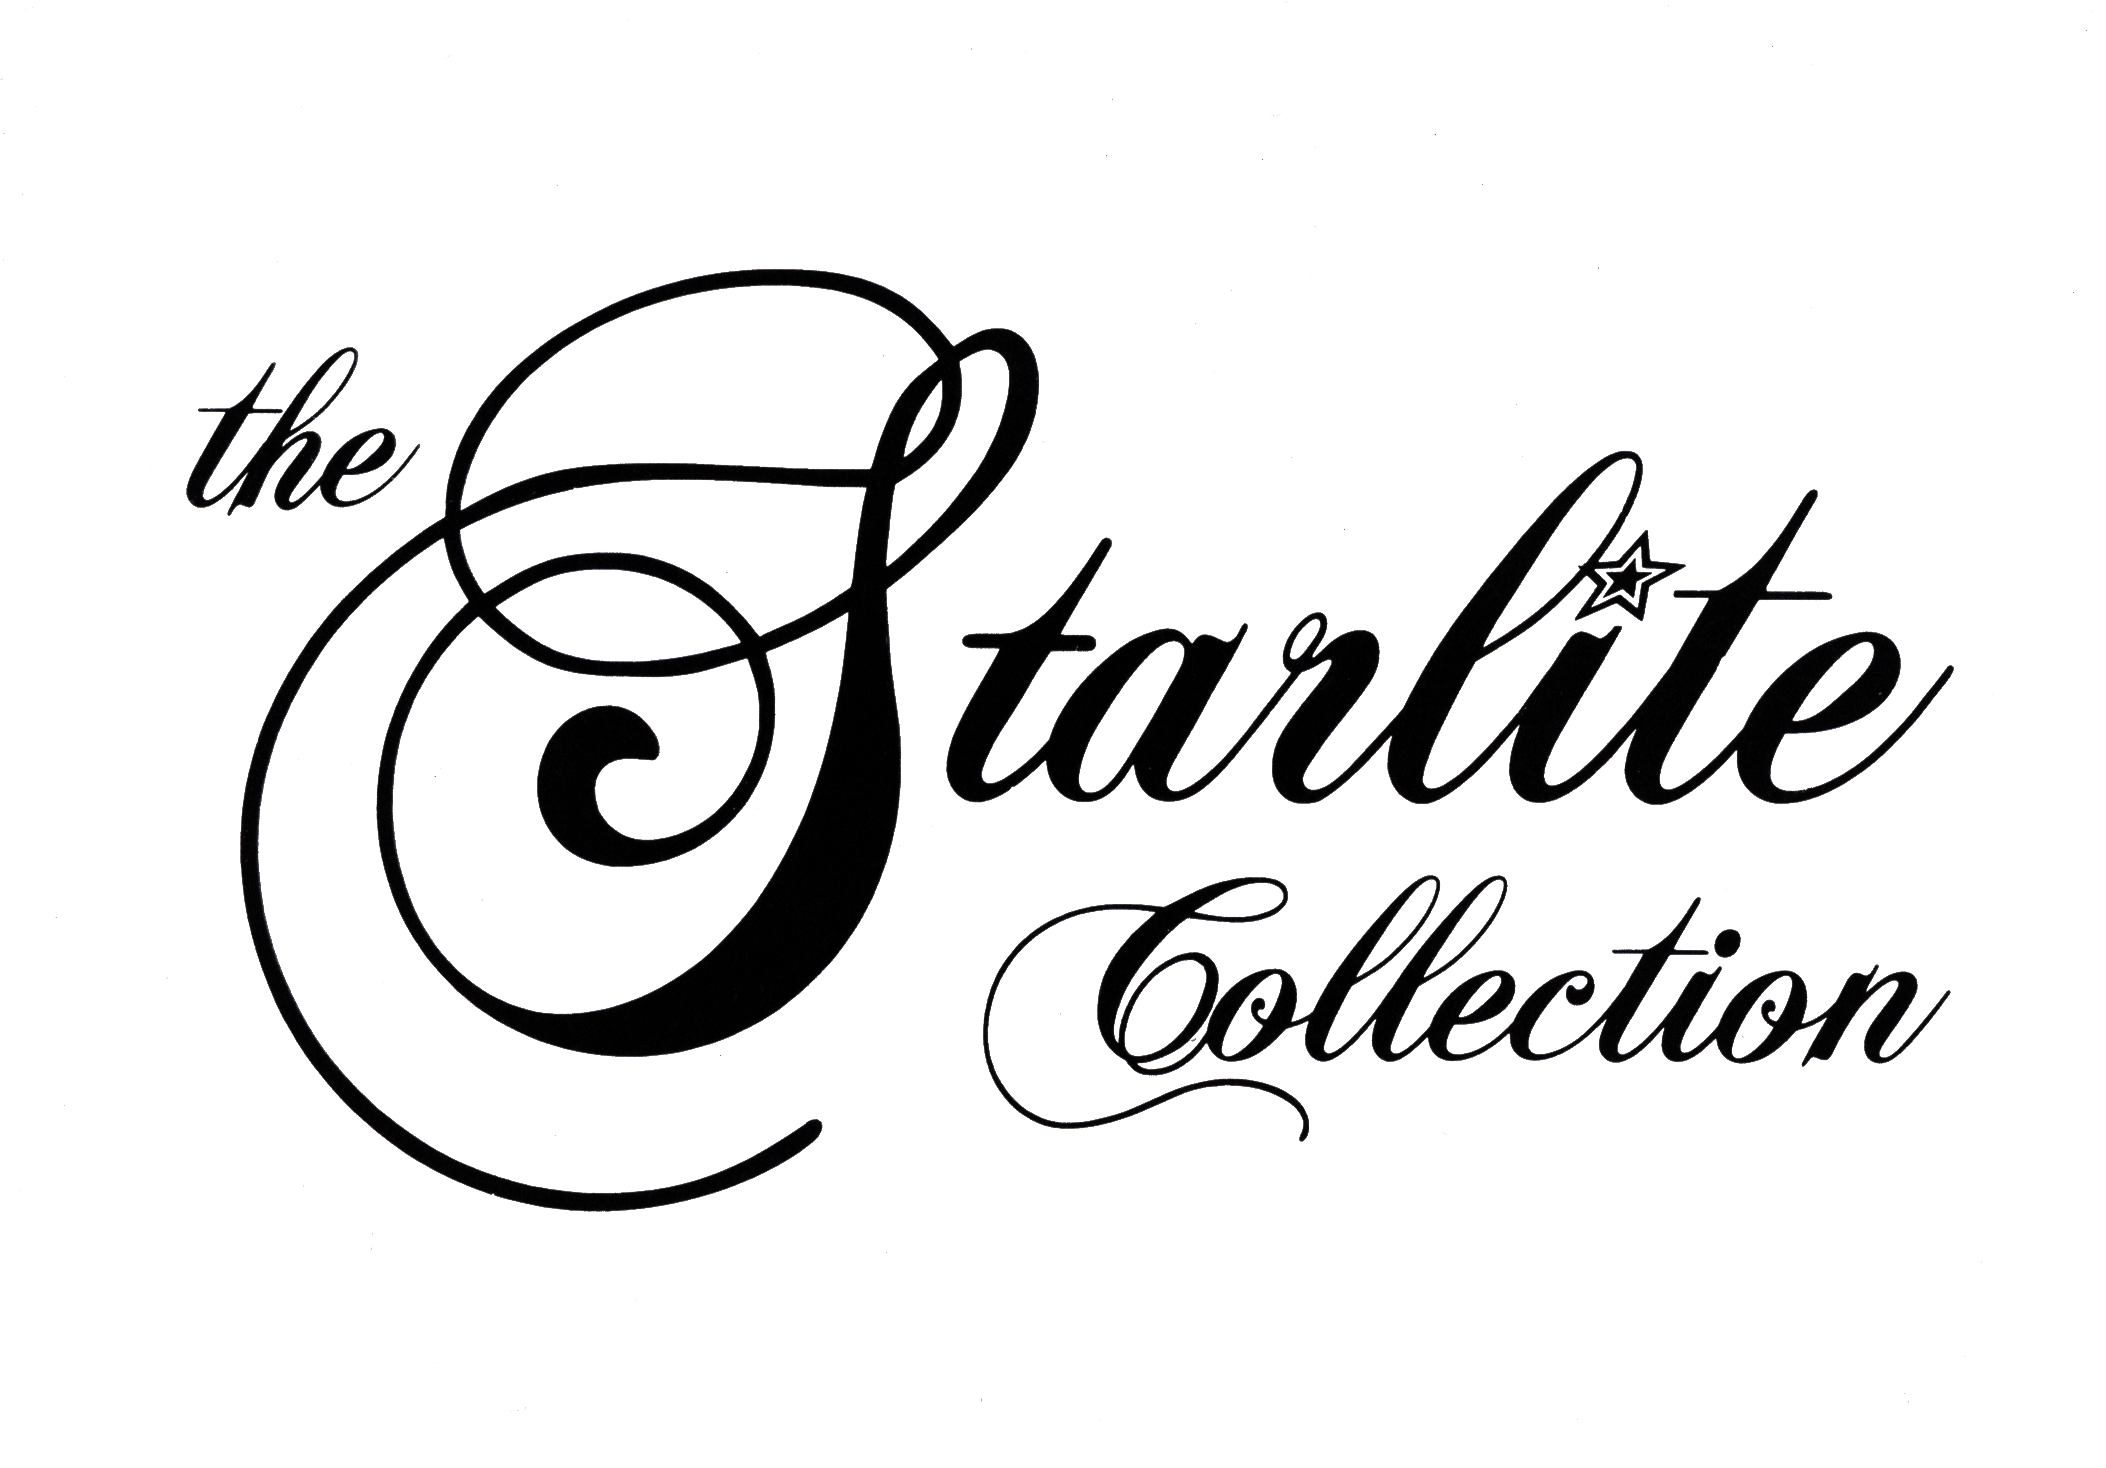 starlitecollection